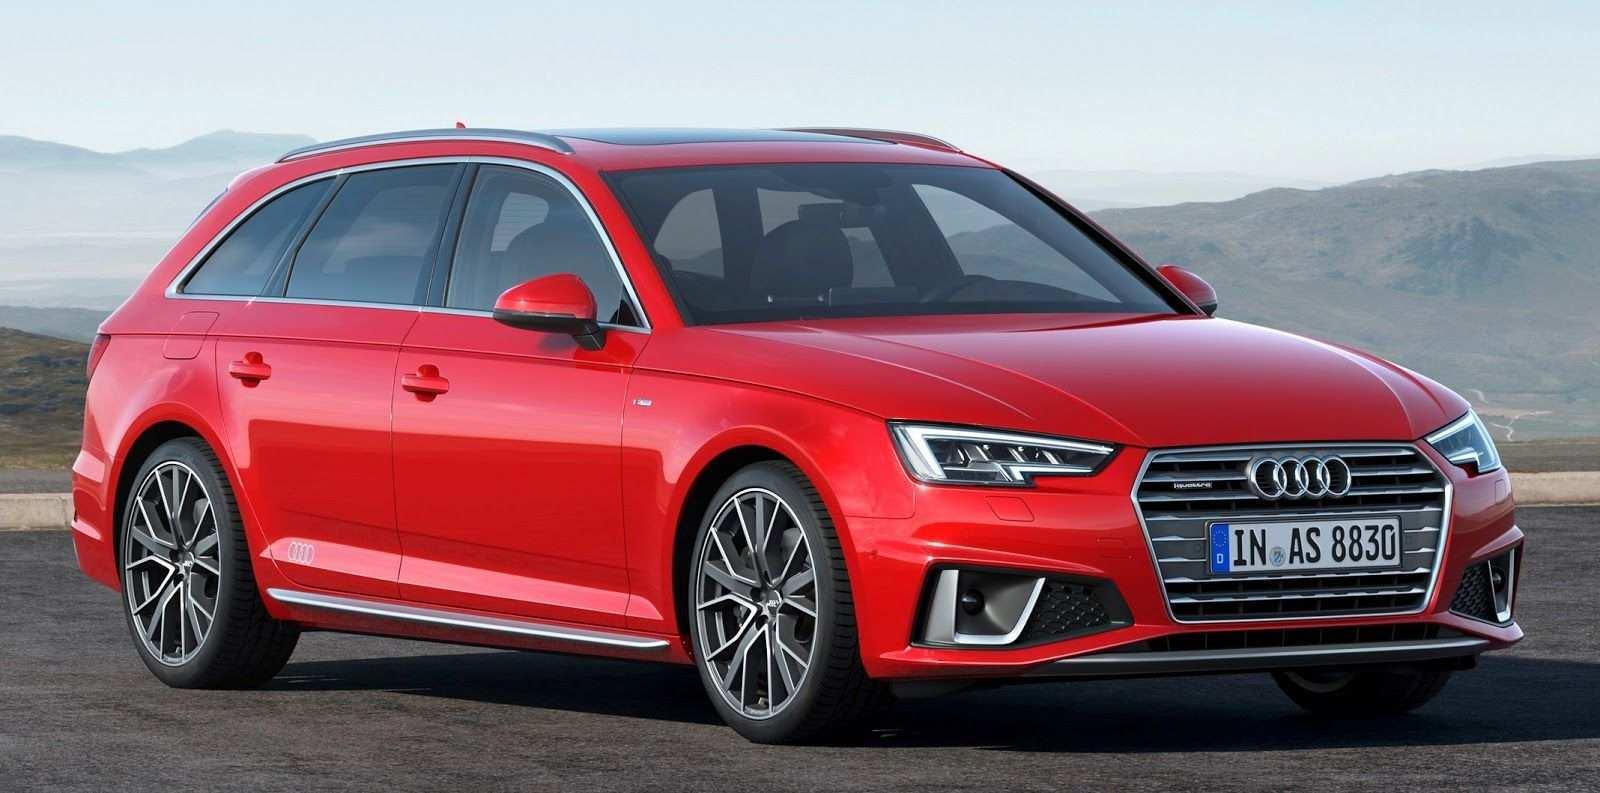 97 All New Linha Audi 2019 New Review First Drive with Linha Audi 2019 New Review